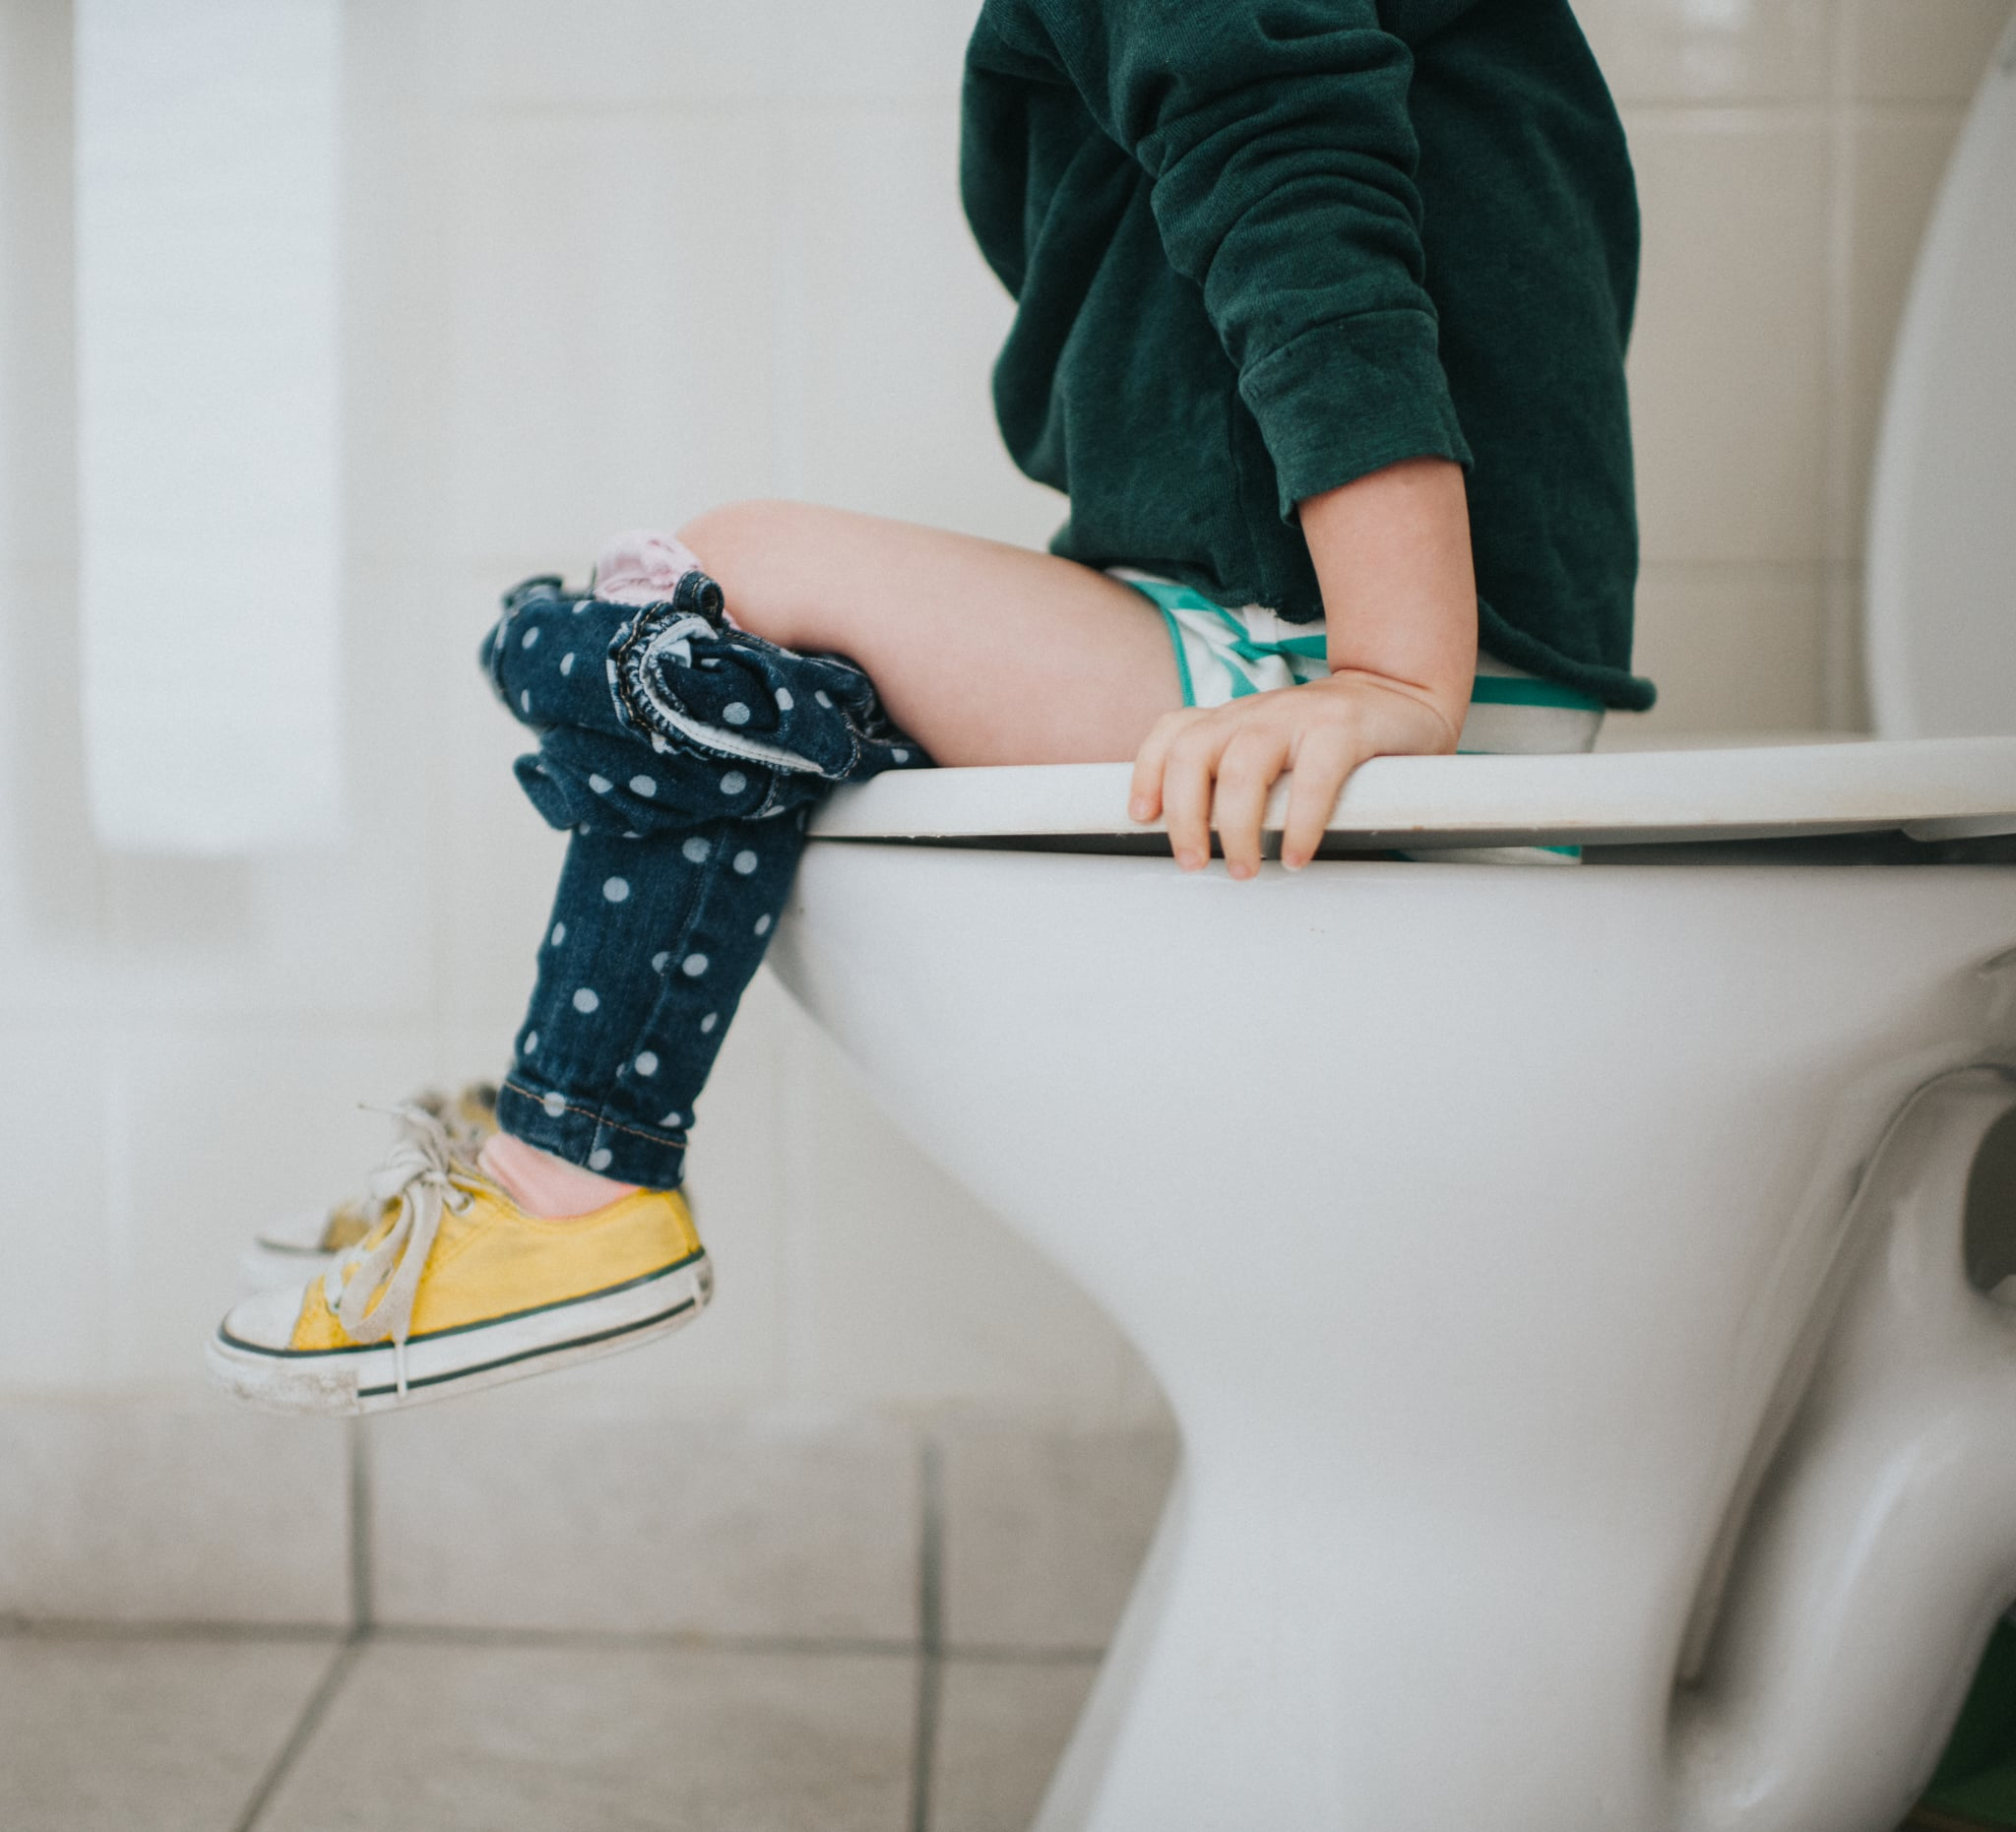 Small child on a toilet